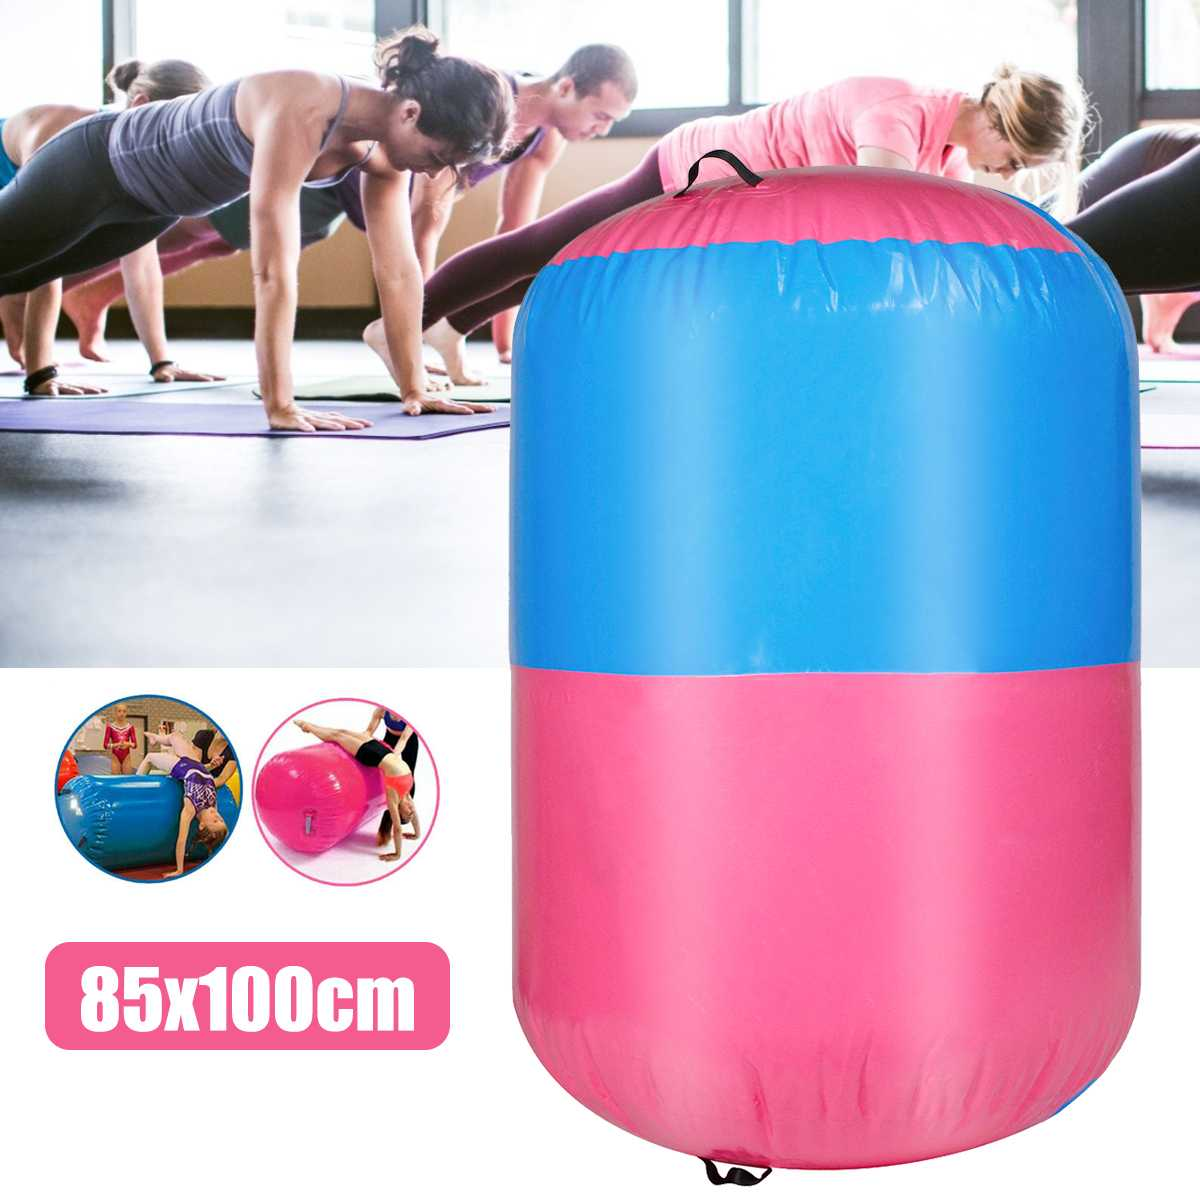 100x85cm Inflatable Airtrack Air Mat Home Roller Small Airtrack Gymnastics Mat Cylinder Gym Training Sport Fitness